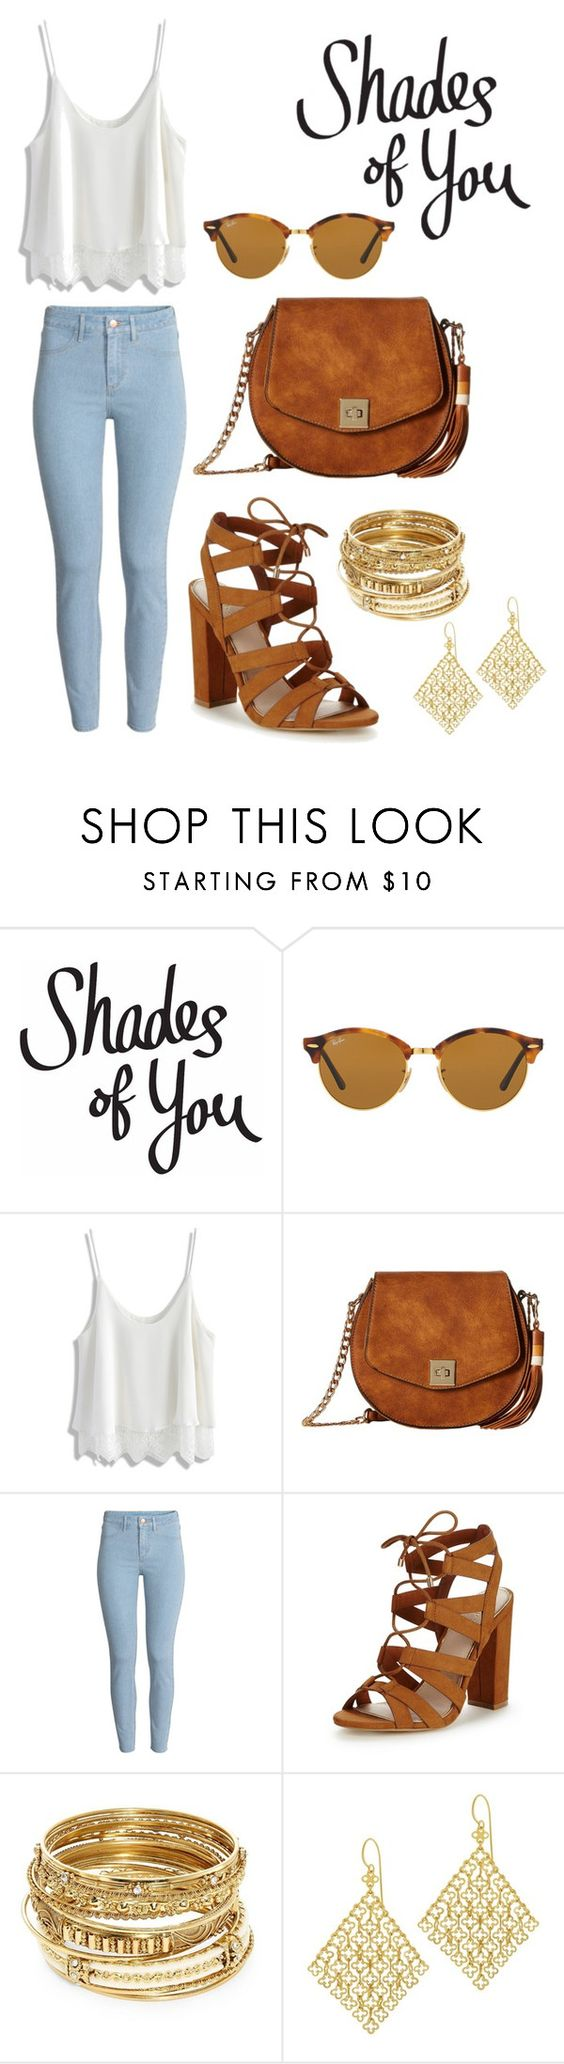 """""""Shades of You: Sunglass Hut Contest Entry"""" by silkeselina ❤ liked on Polyvore featuring Ray-Ban, Chicwish, Gabriella Rocha, H&M, Lipsy, ABS by Allen Schwartz, Dinny Hall and shadesofyou"""